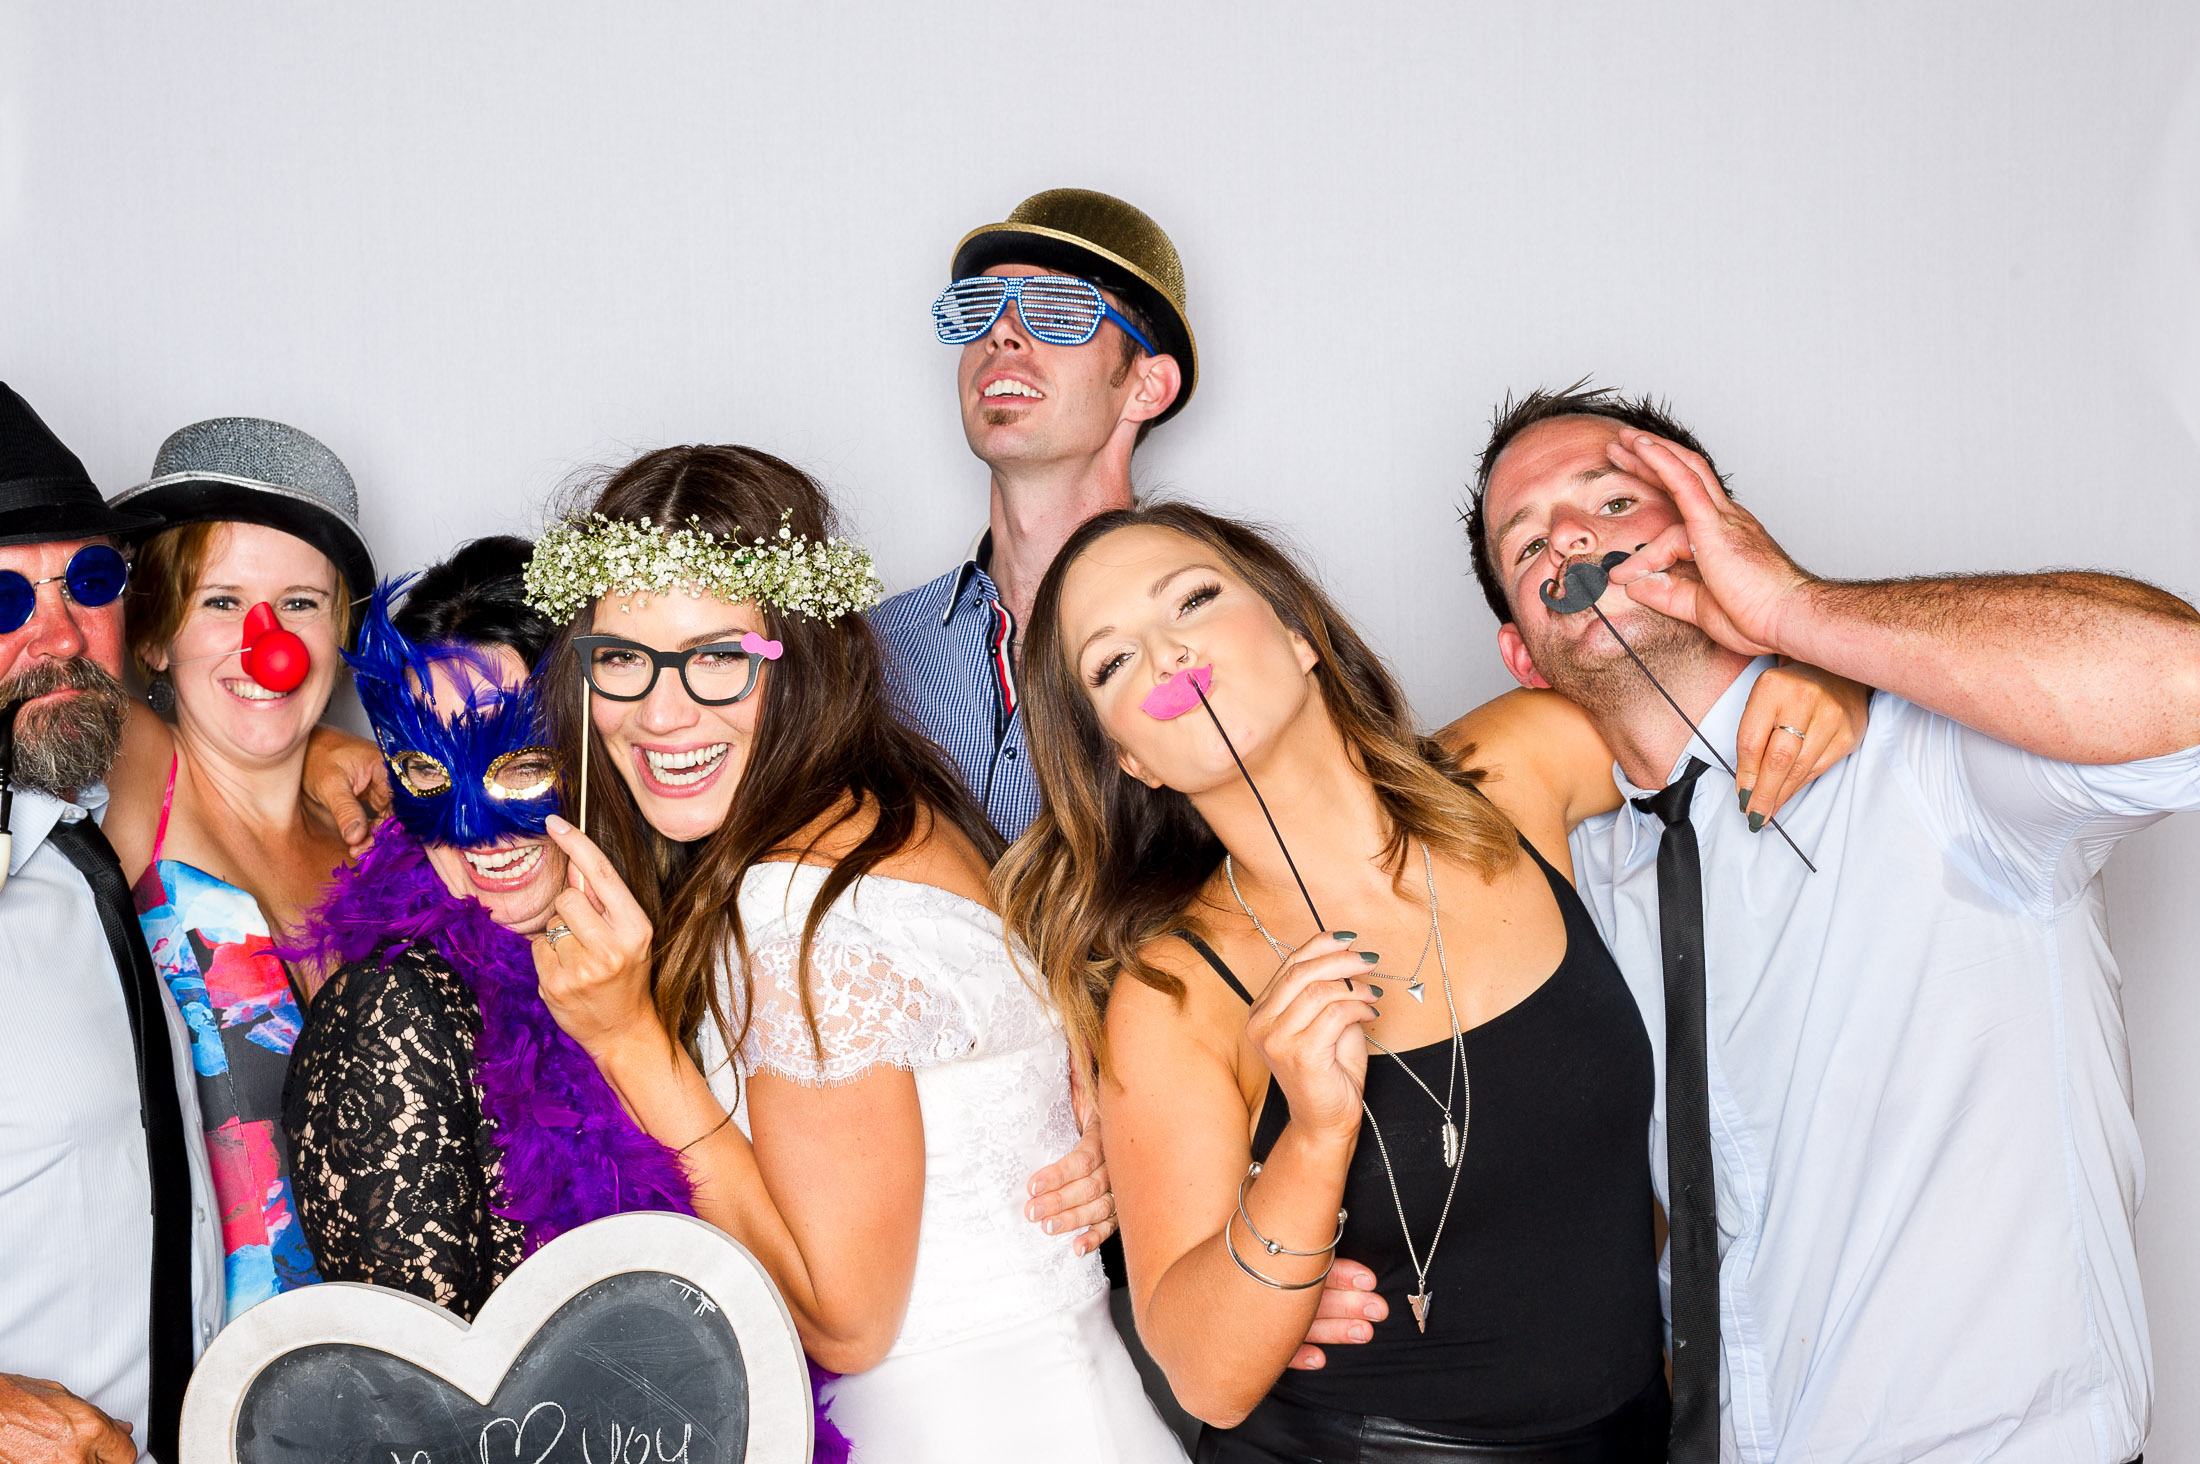 Justin and Jim Wedding Photo Booth